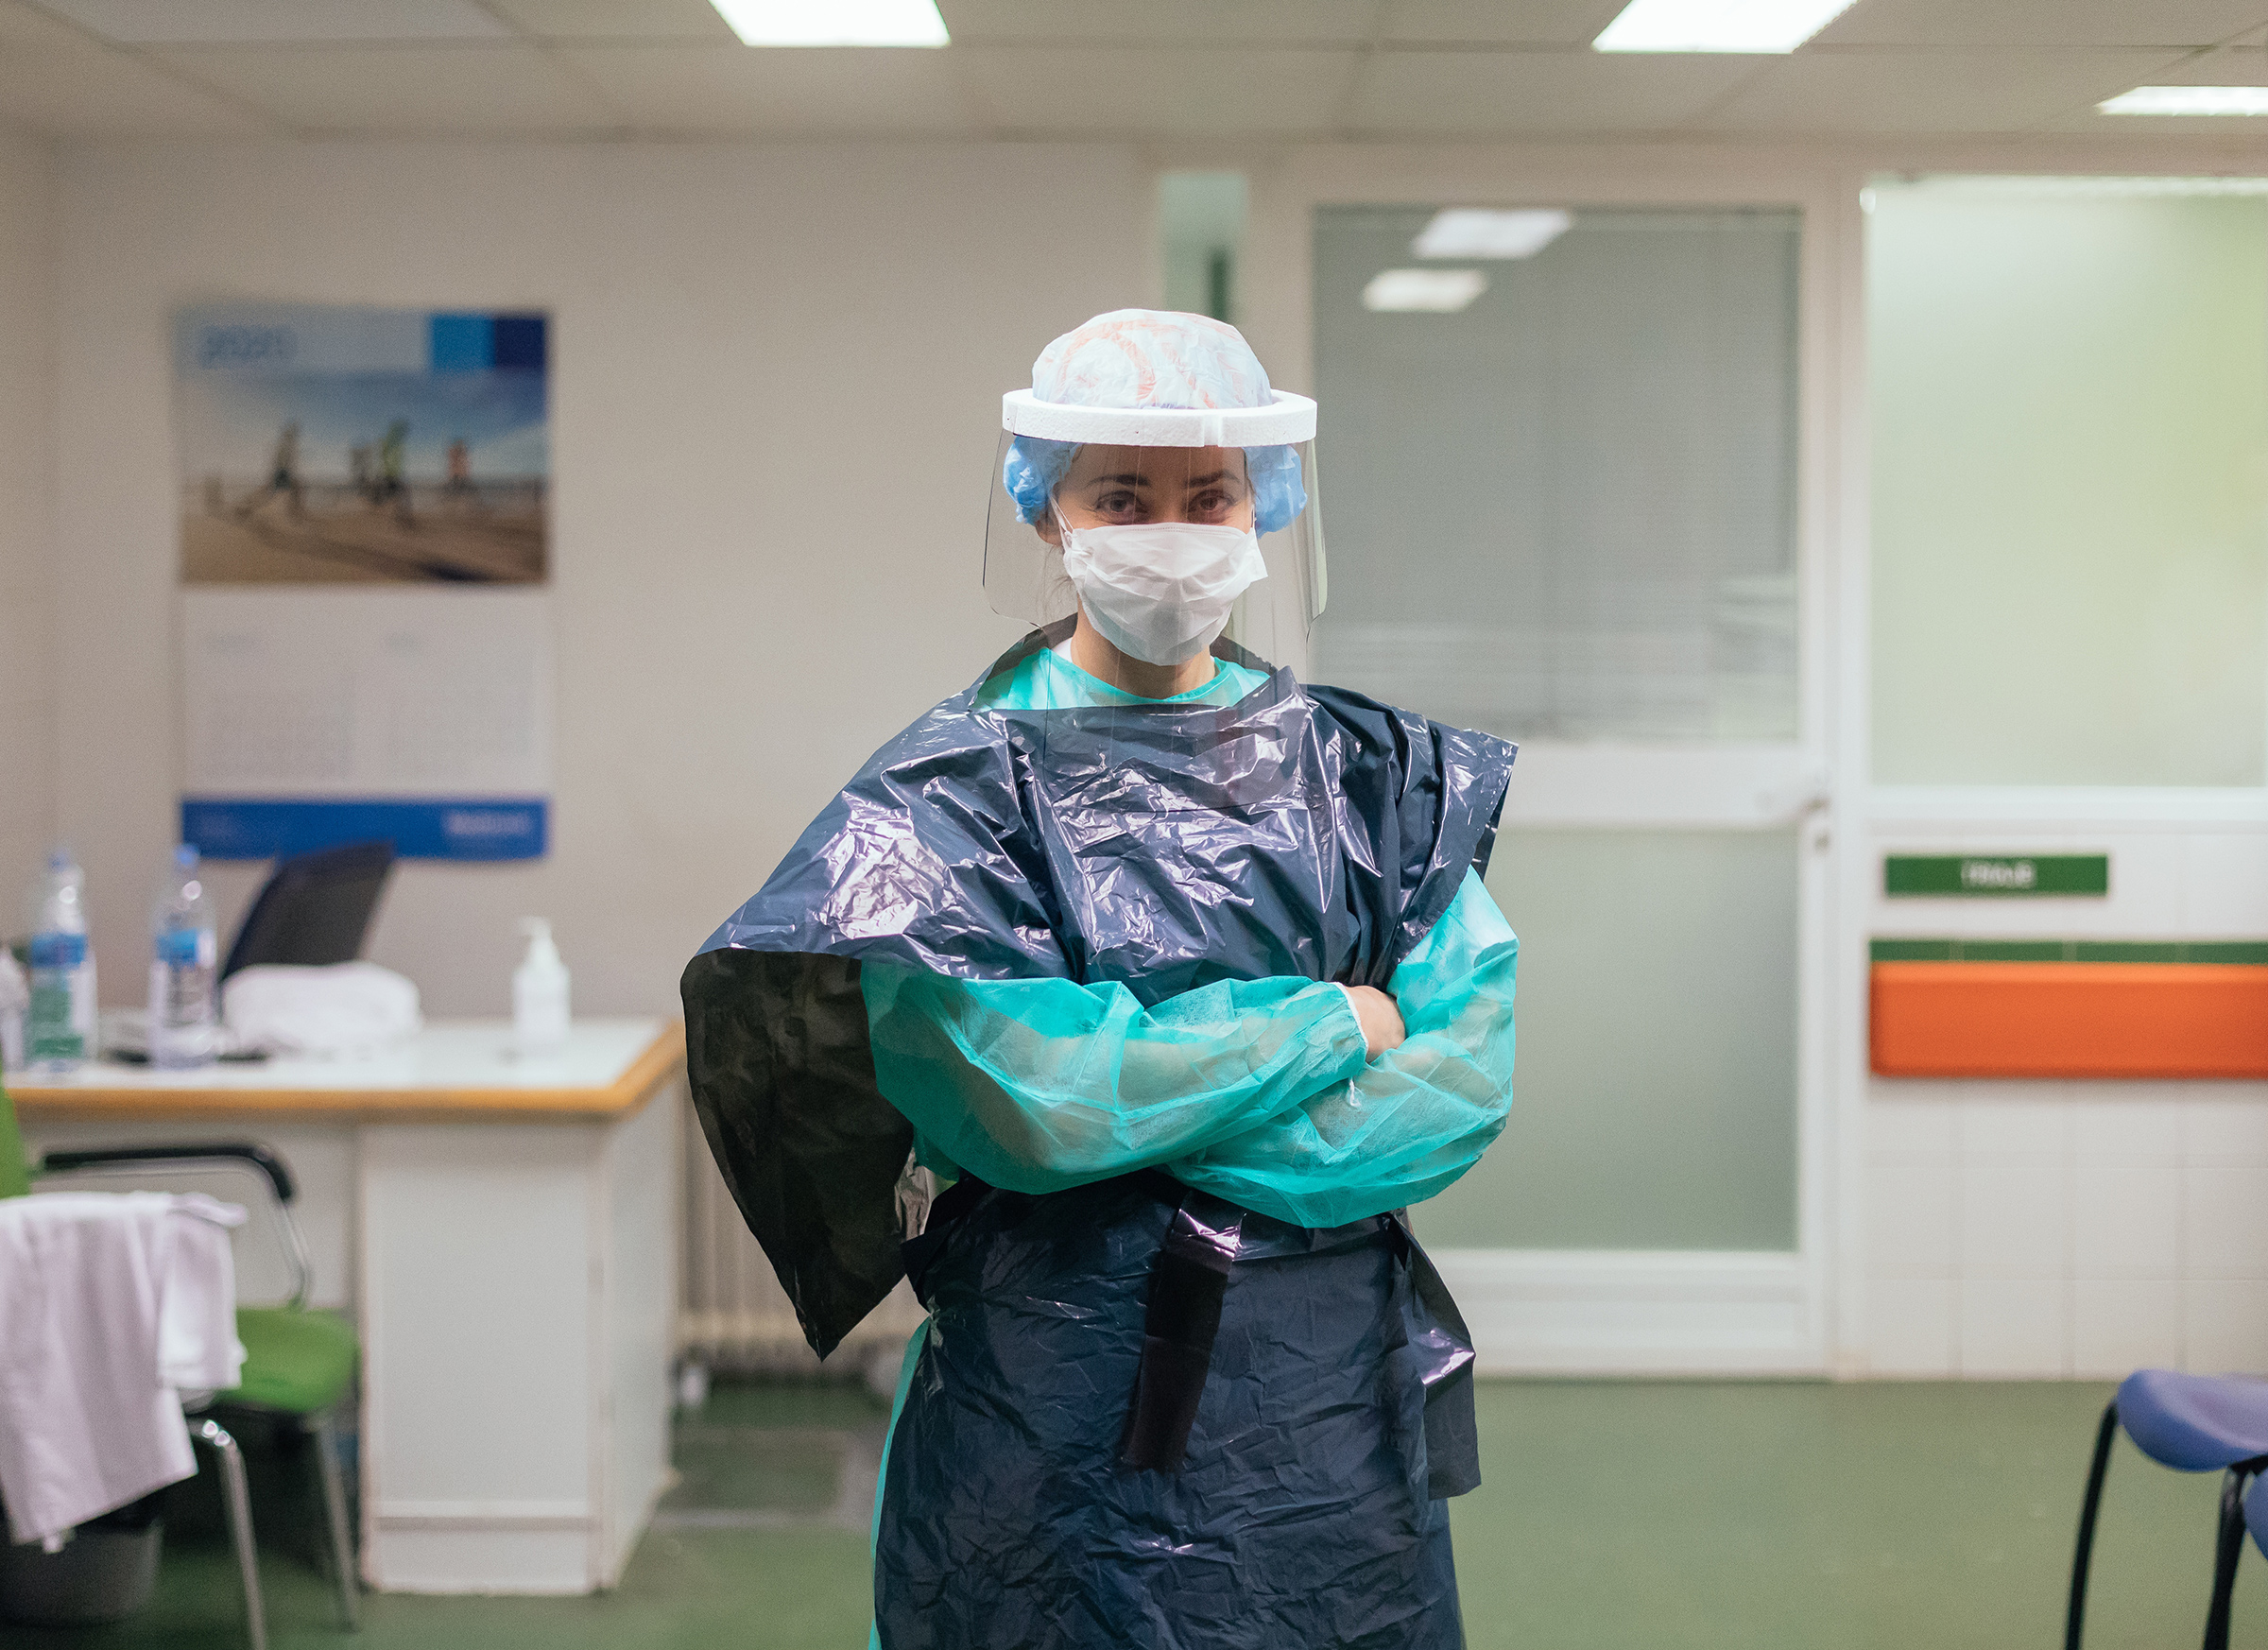 A Spanish emergency nurse, like many others around the world, has to rely on inadequate gear for protection